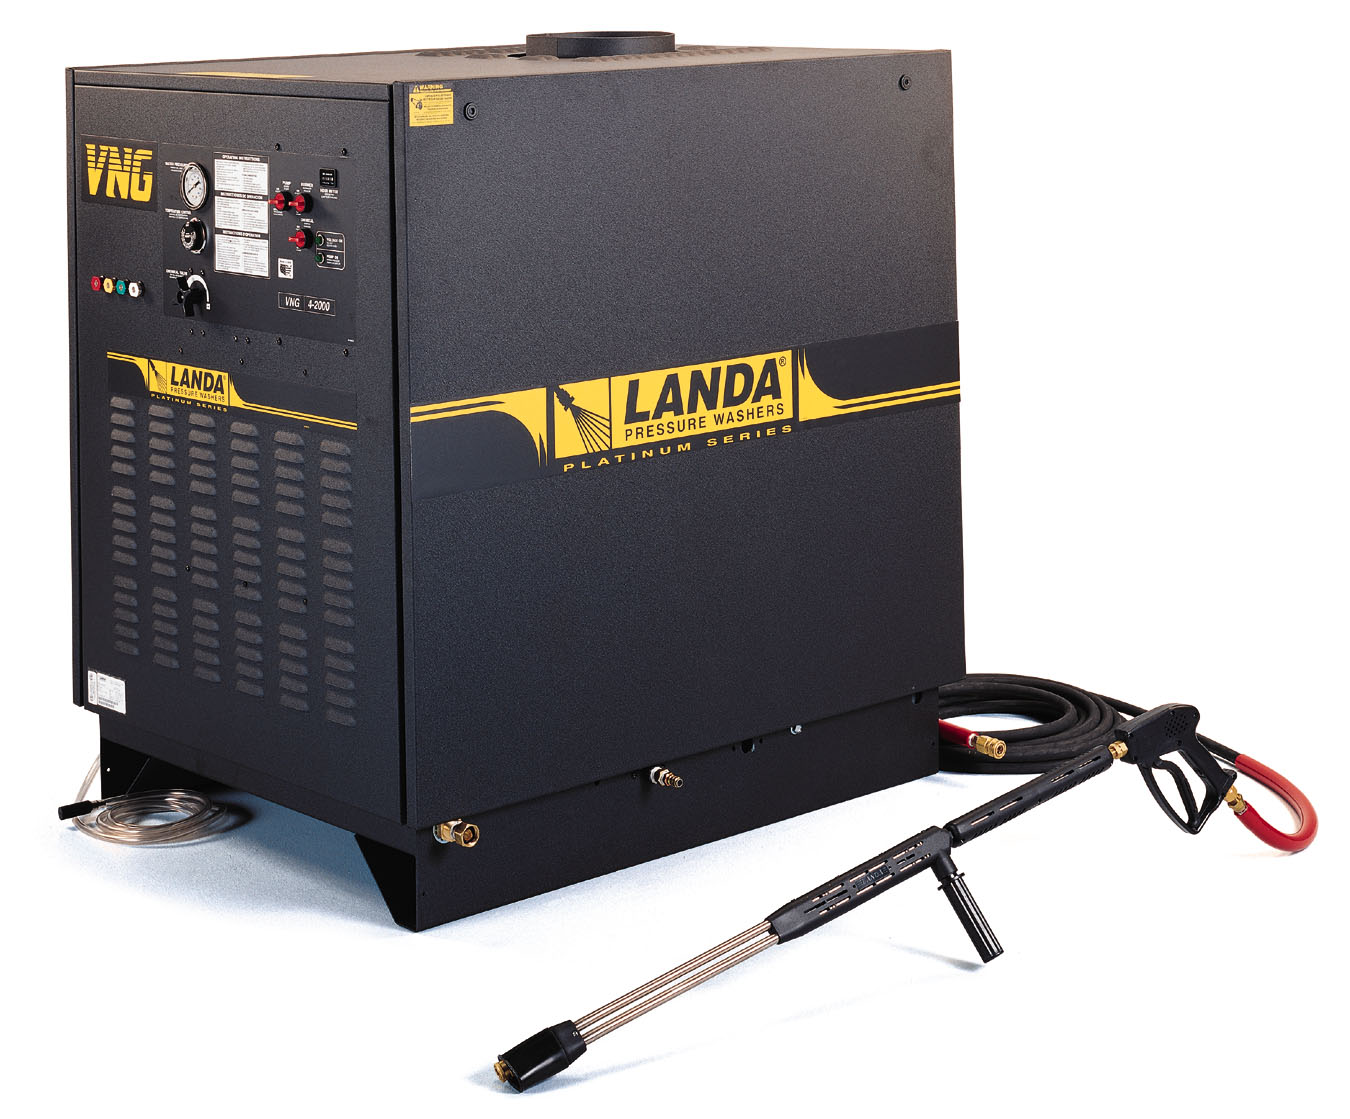 Landa Oil Fired Hot Water Pressure Washer VNG4-20024A